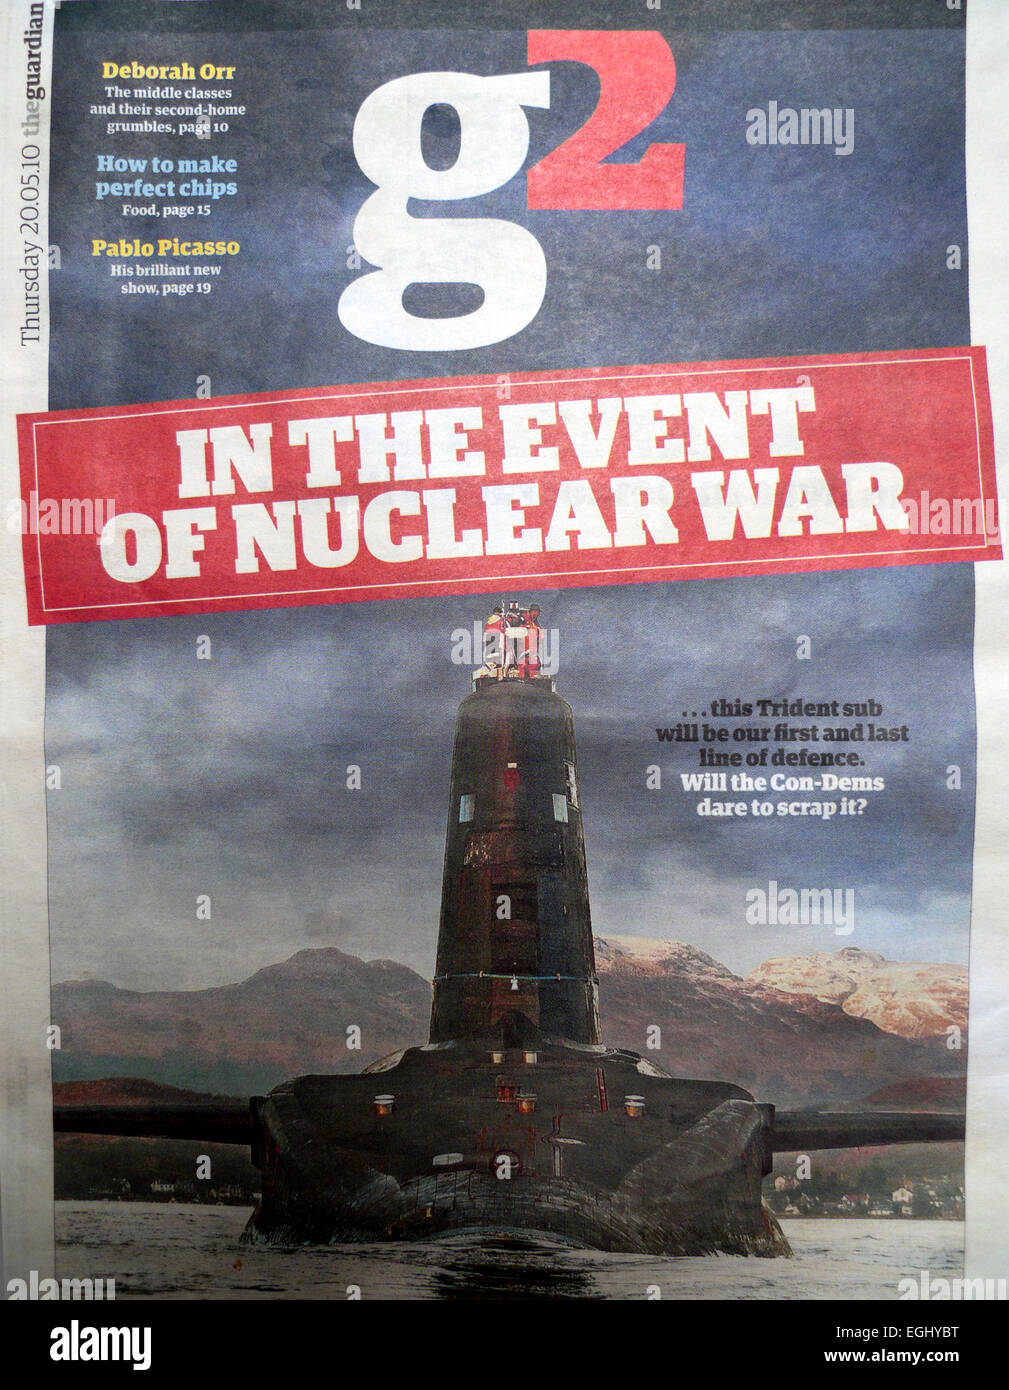 Guardian newspaper G2 section headline on front page Trident Submarine article In the Event of Nuclear War 20 May - Stock Image